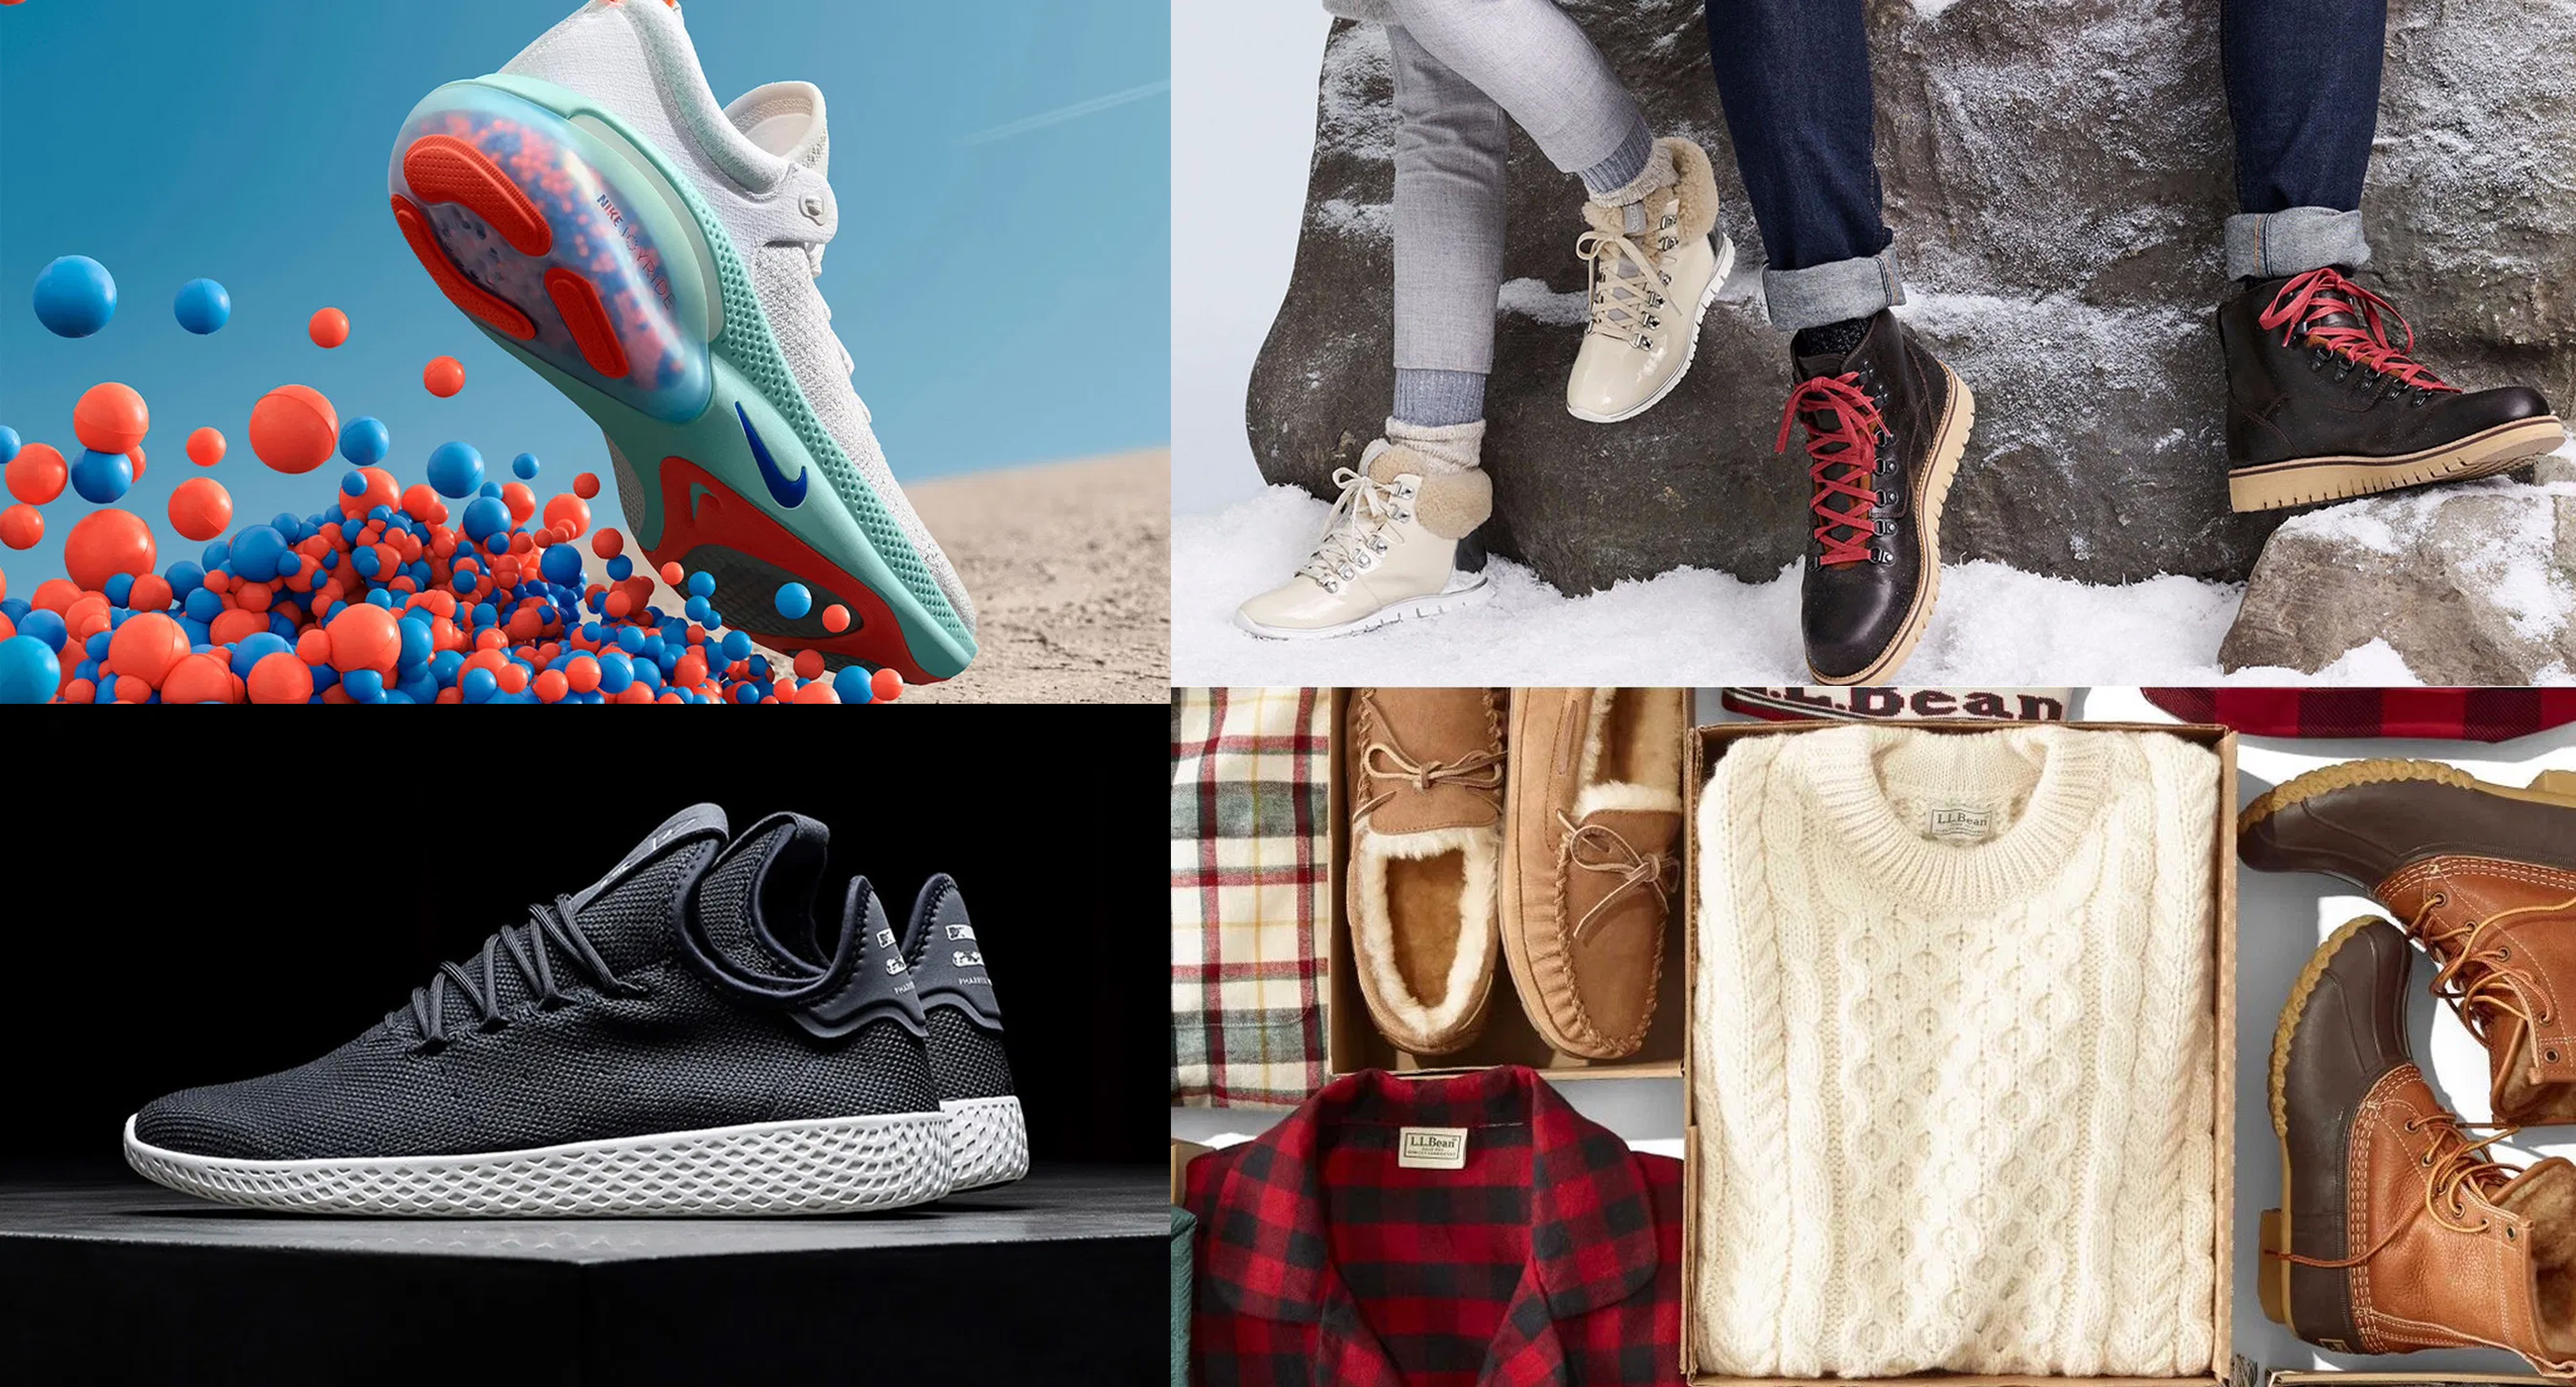 The Cyber Monday Fashion Deals 2019 Nike Adidas More 9to5toys